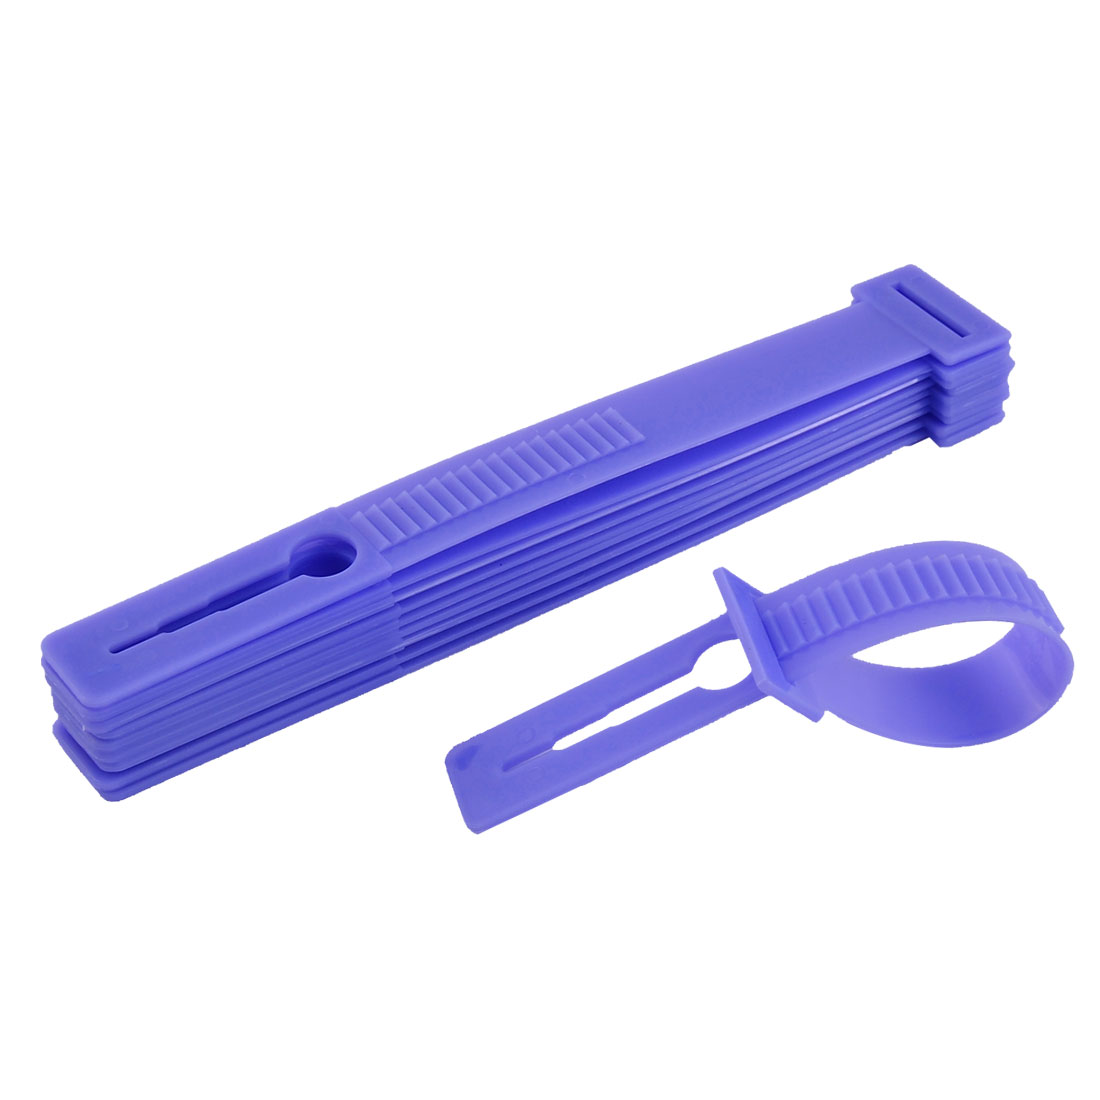 Household Plastic Windproof Clothesline Pole Clothes Hanger Lock Buckle Purple 10 Pcs